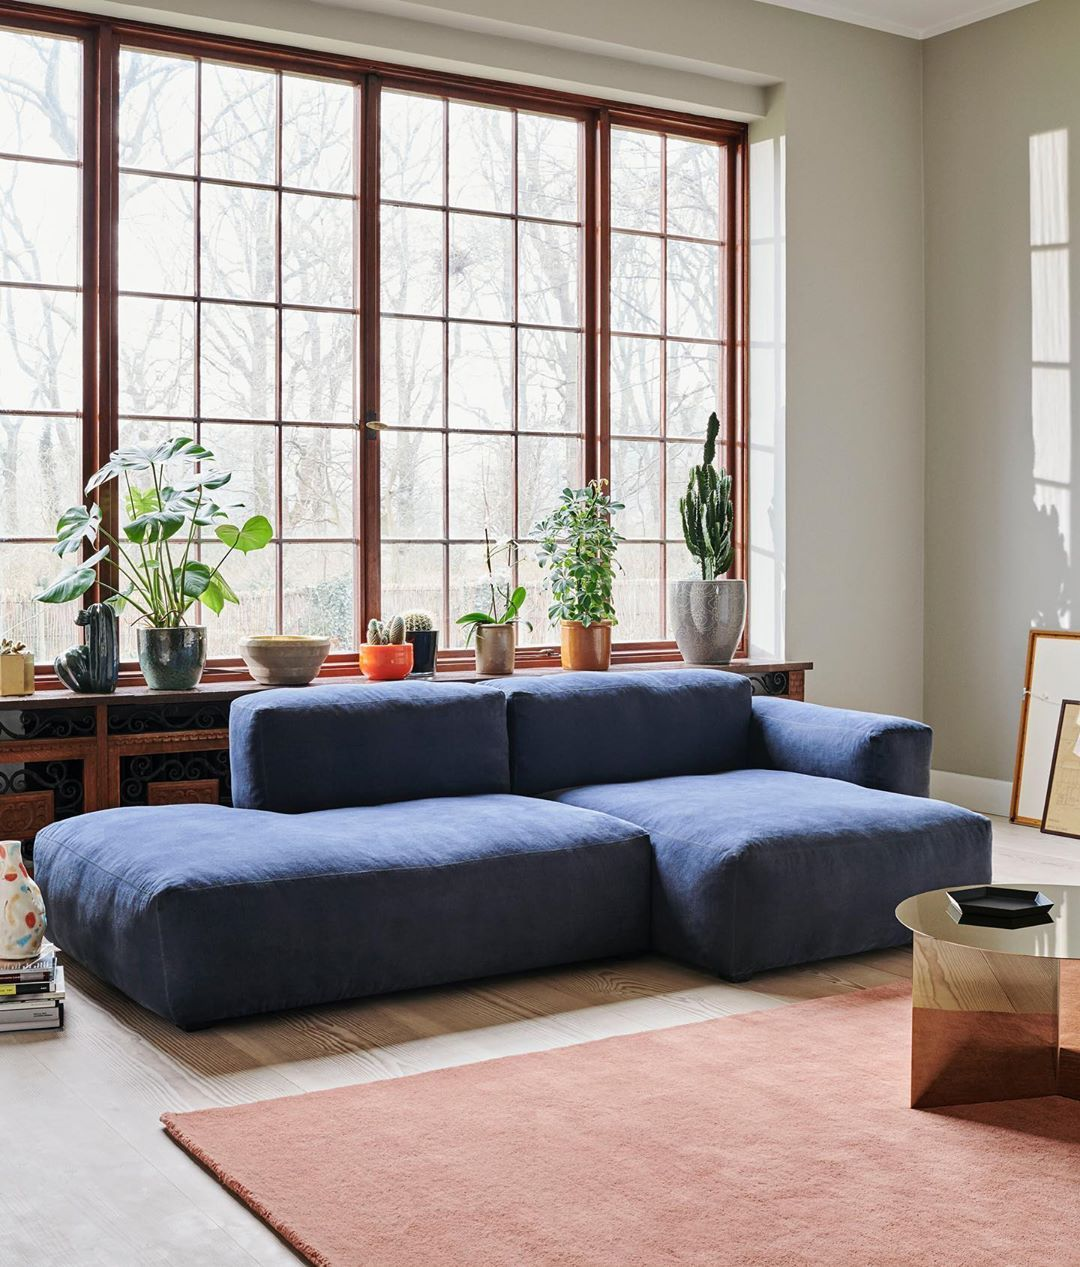 Rounded Edges And Soft Cushions